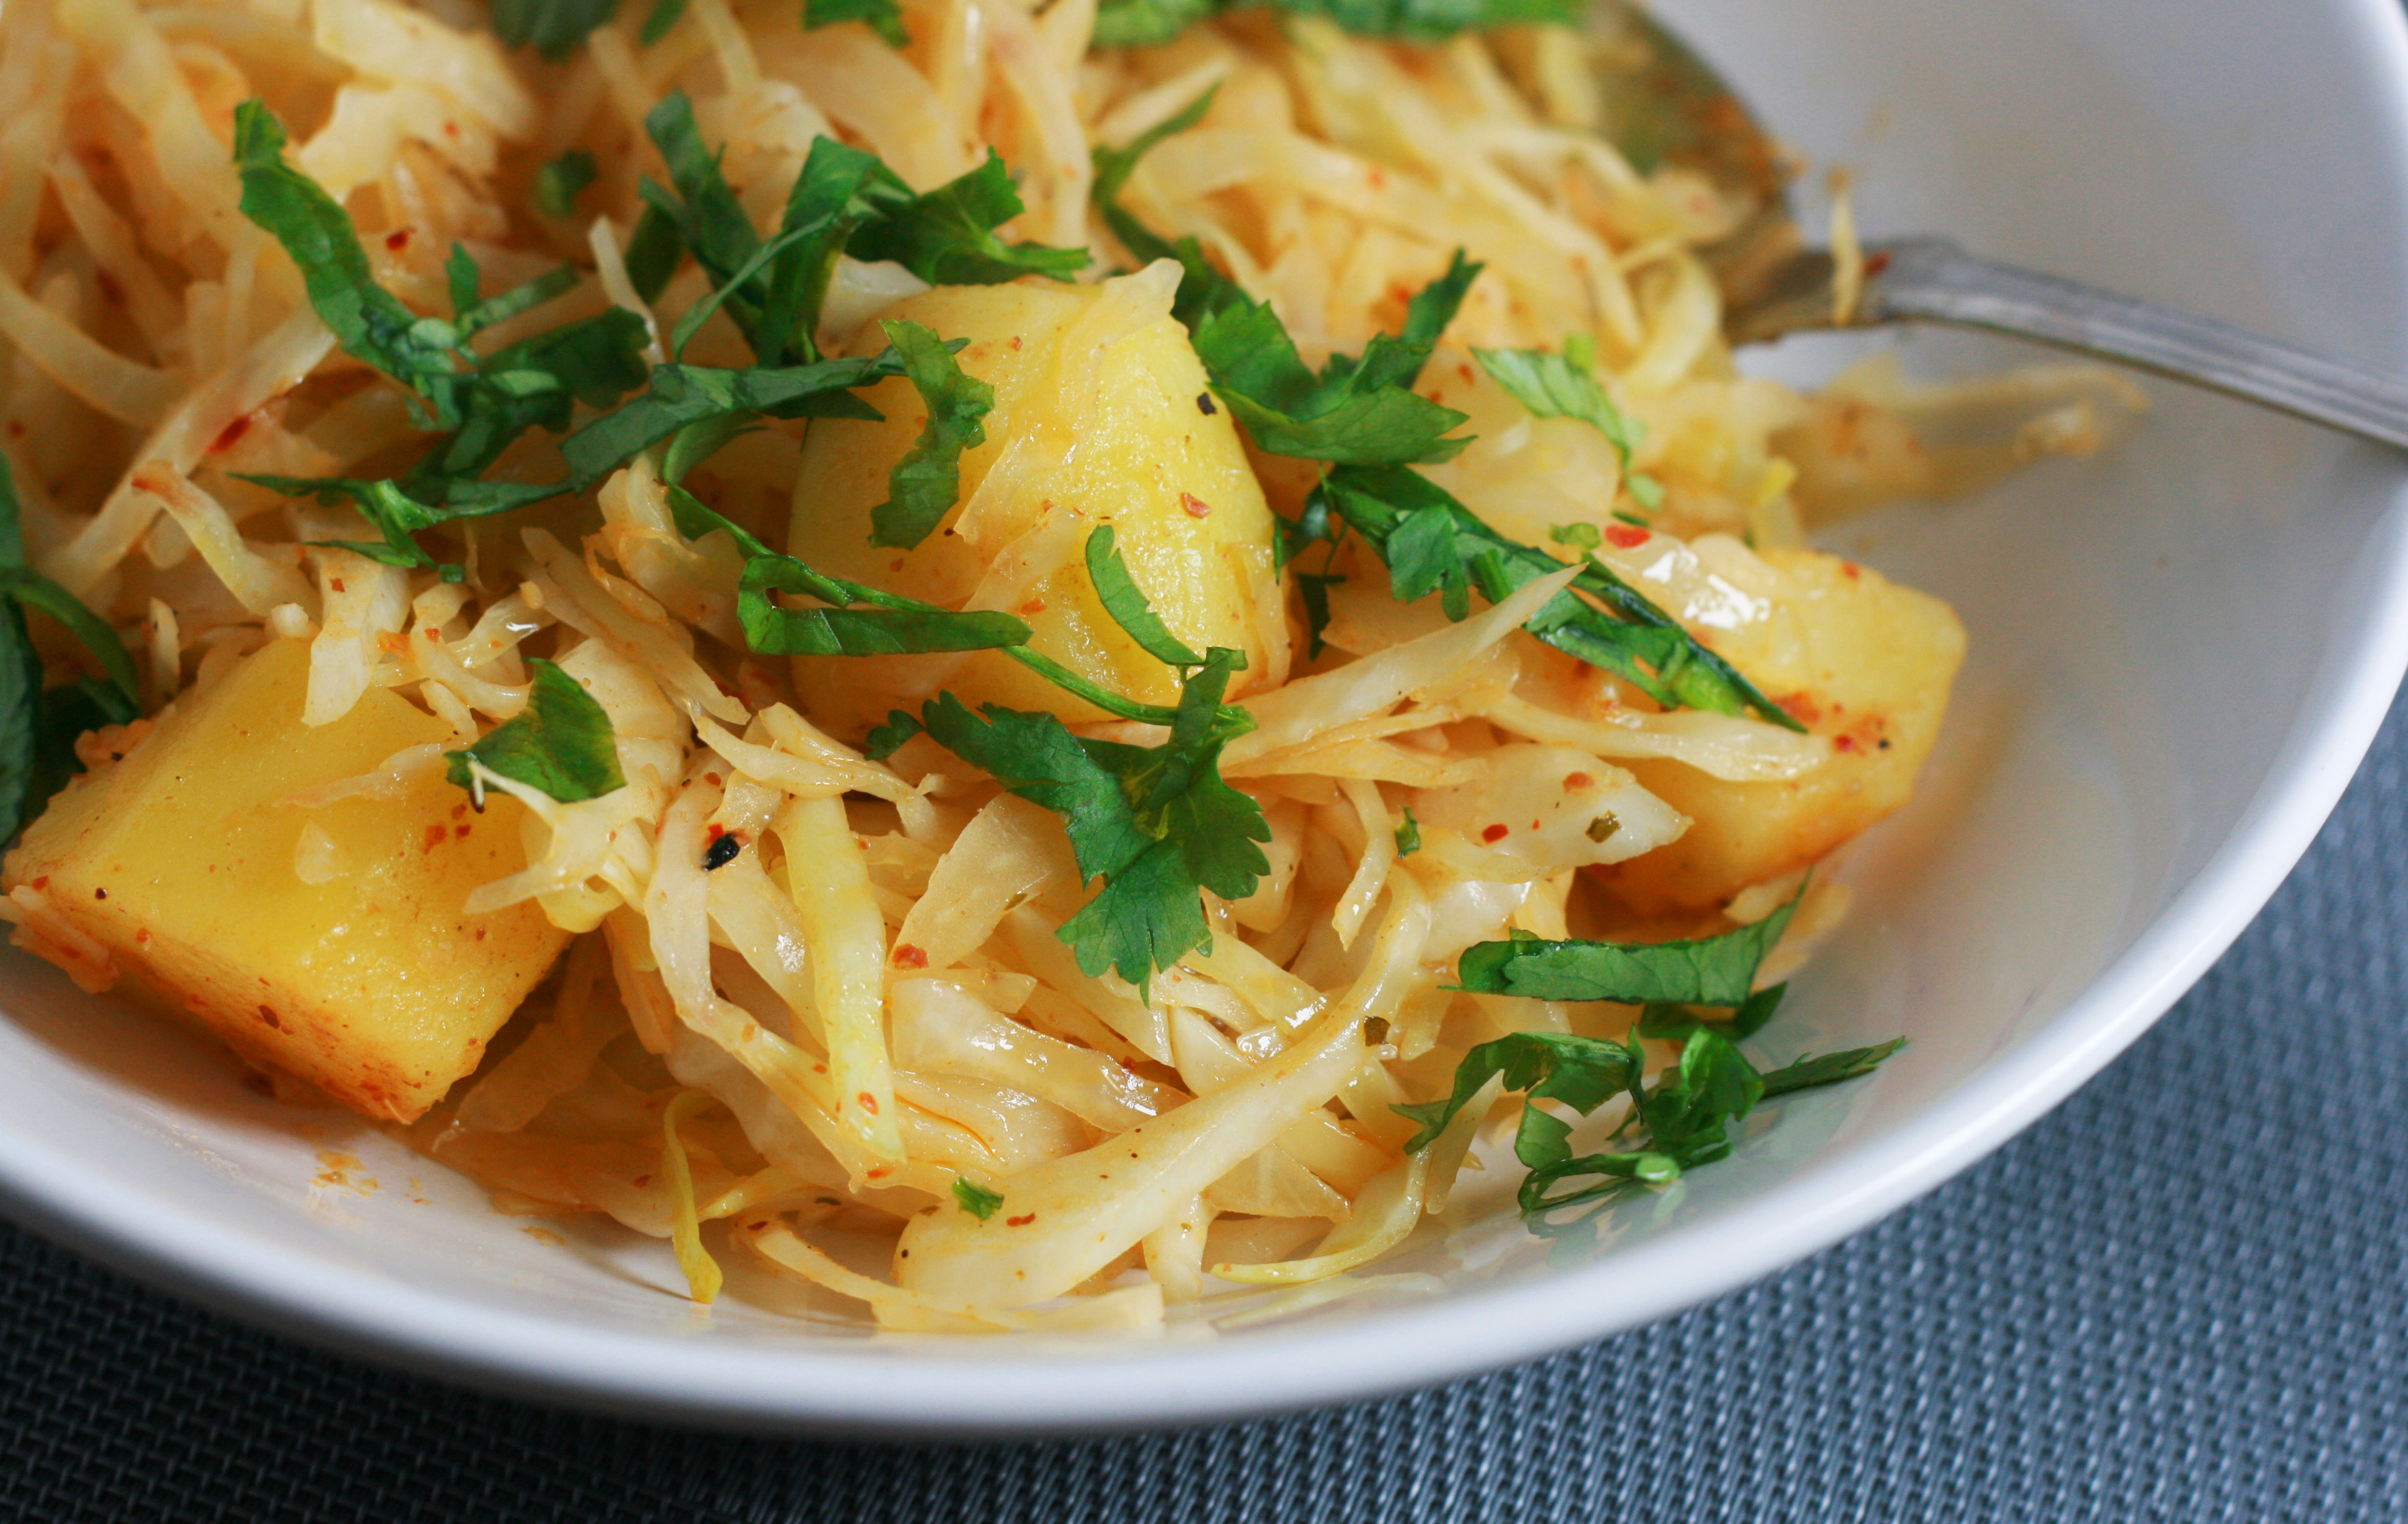 Middle-eastern style cabbage with flavored butter potatoes